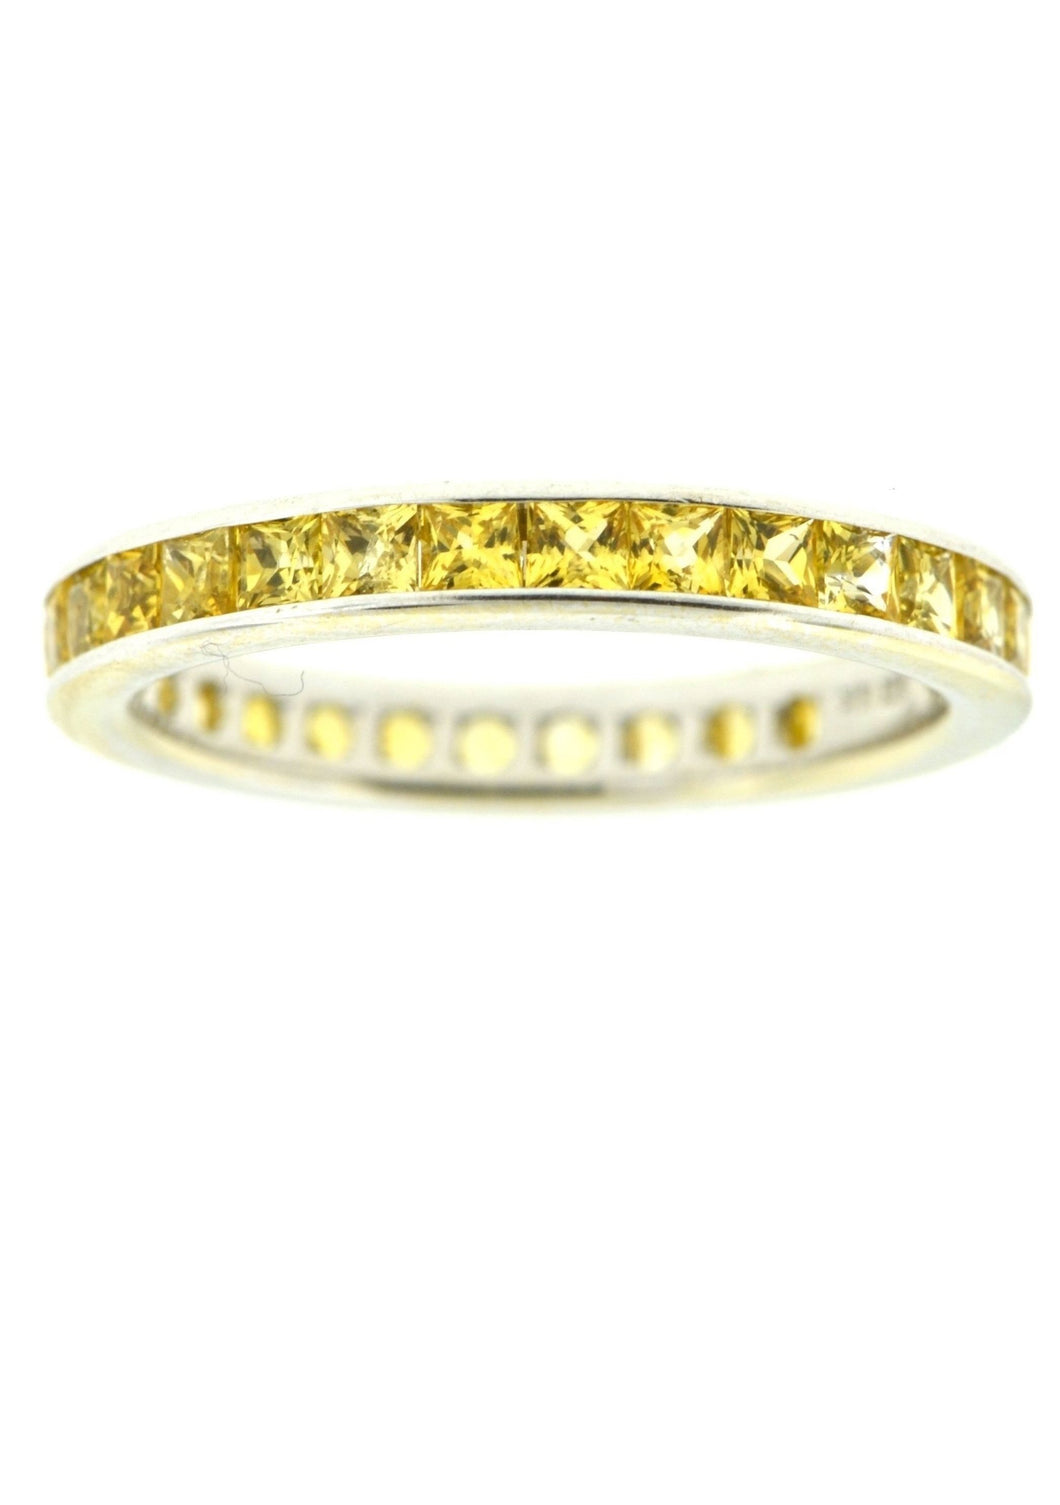 Wedding Band with Yellow Sapphires